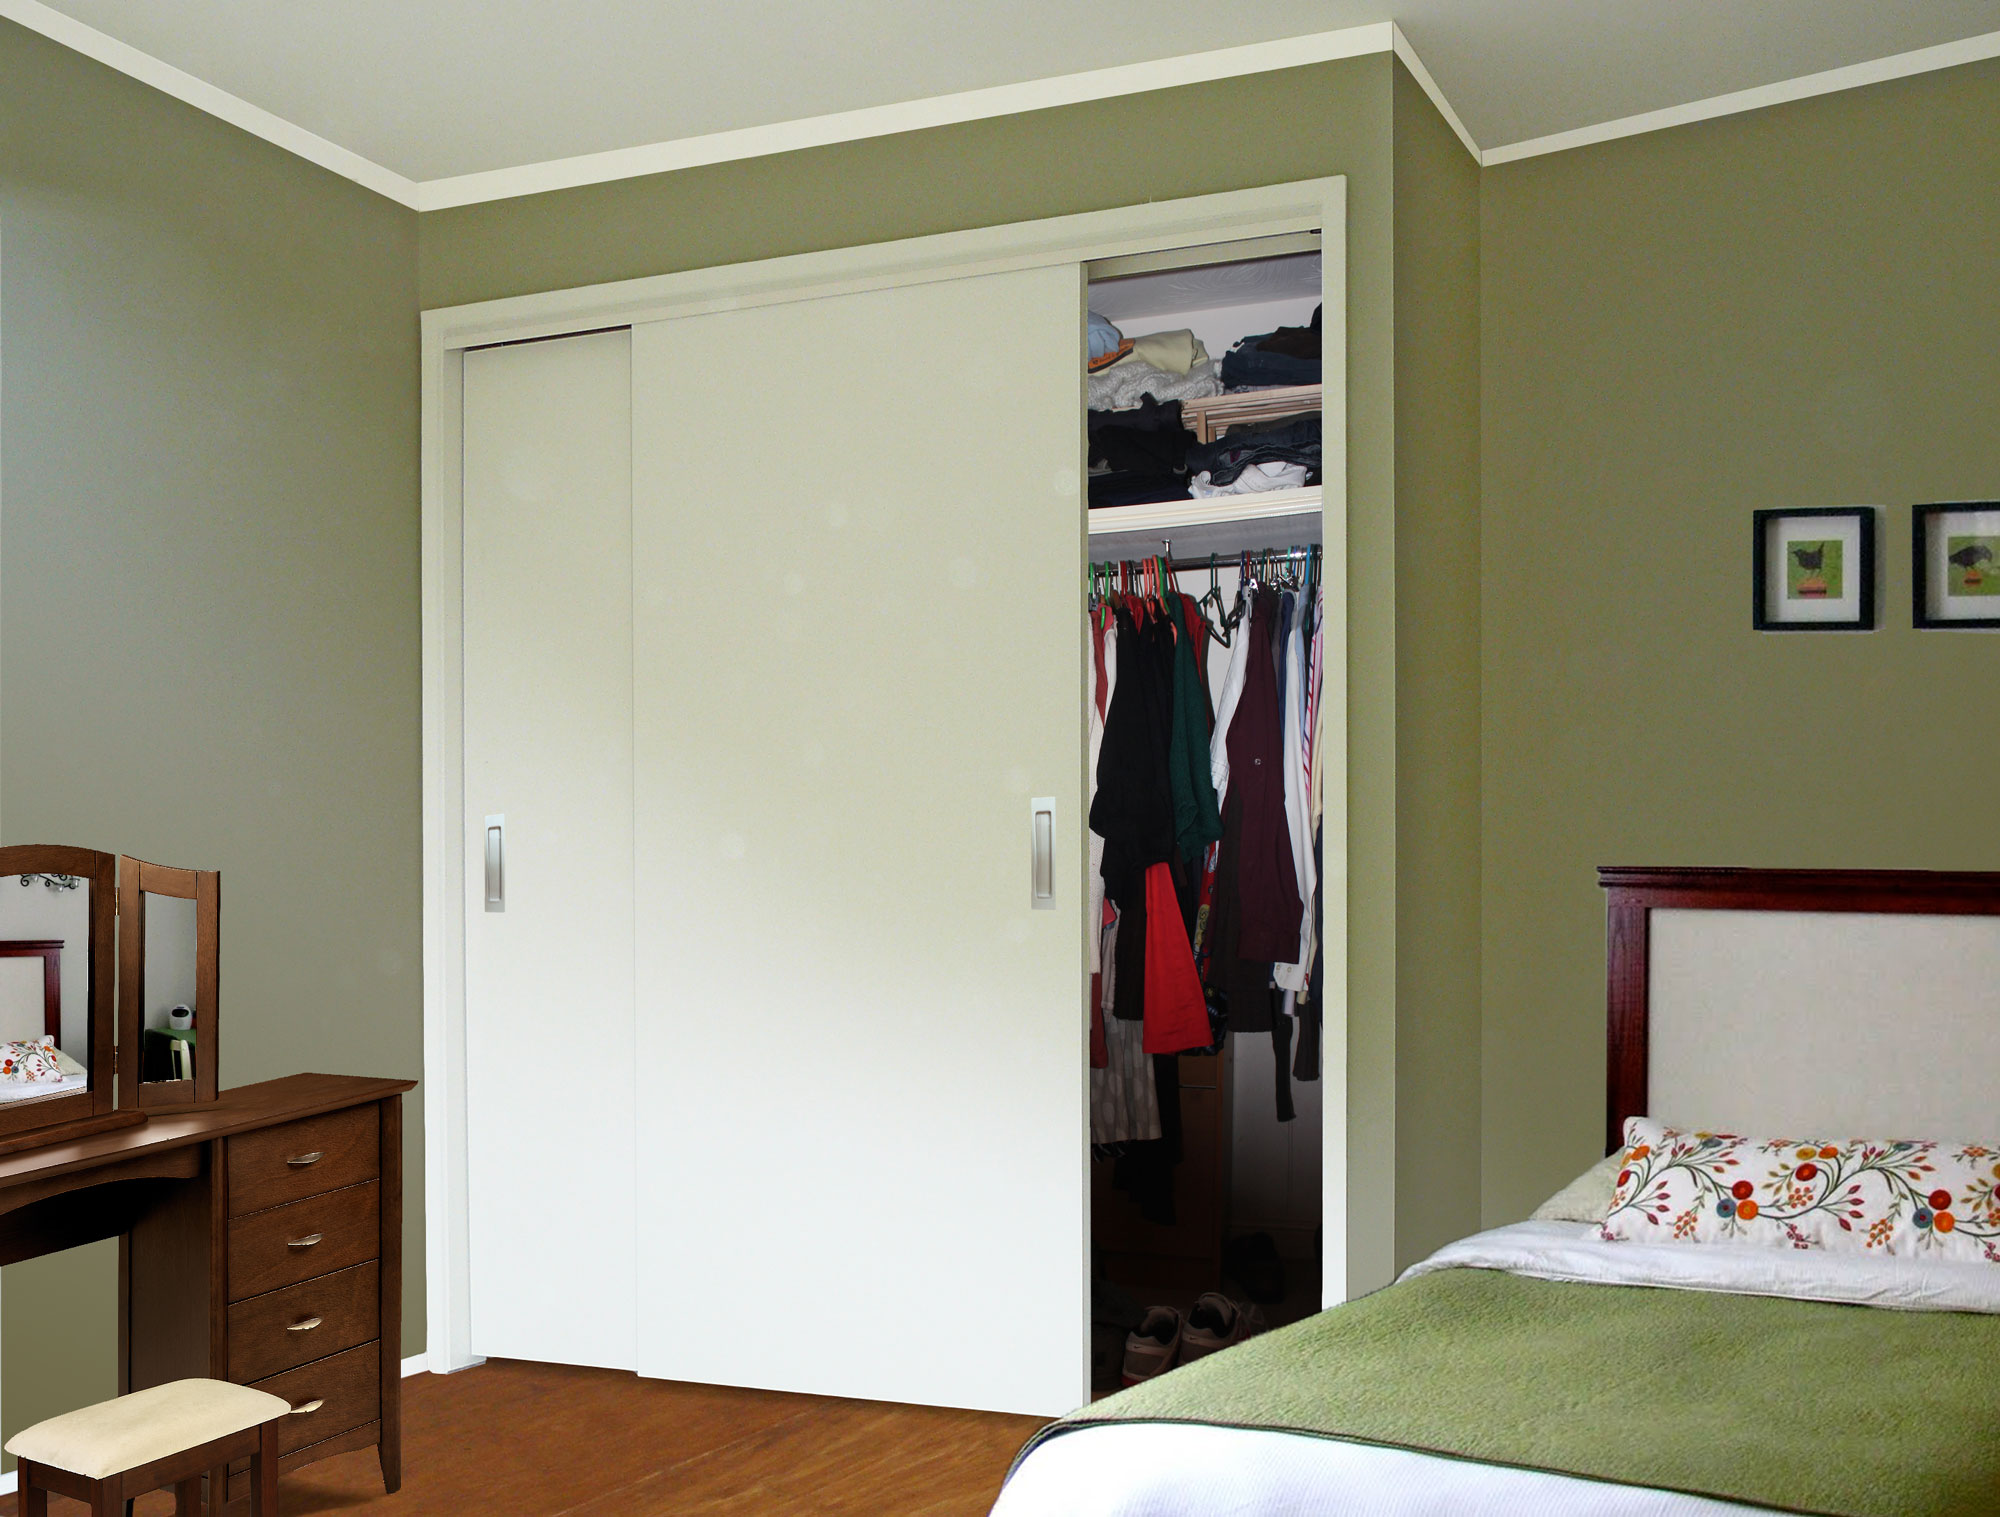 TopFix 2 Door Wardrobe Slider